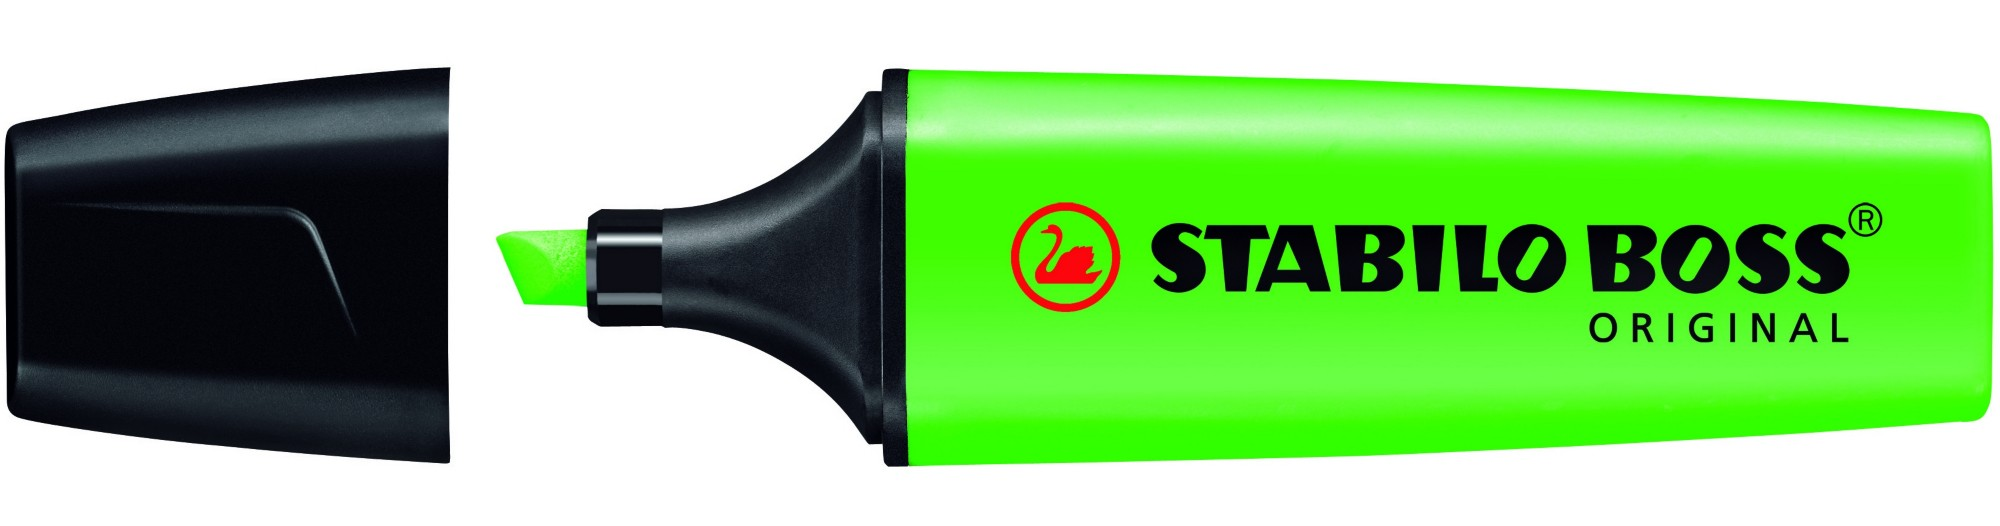 STABILO 70/33 BOSS ORIGINAL GREEN 10PC(S) MARKER